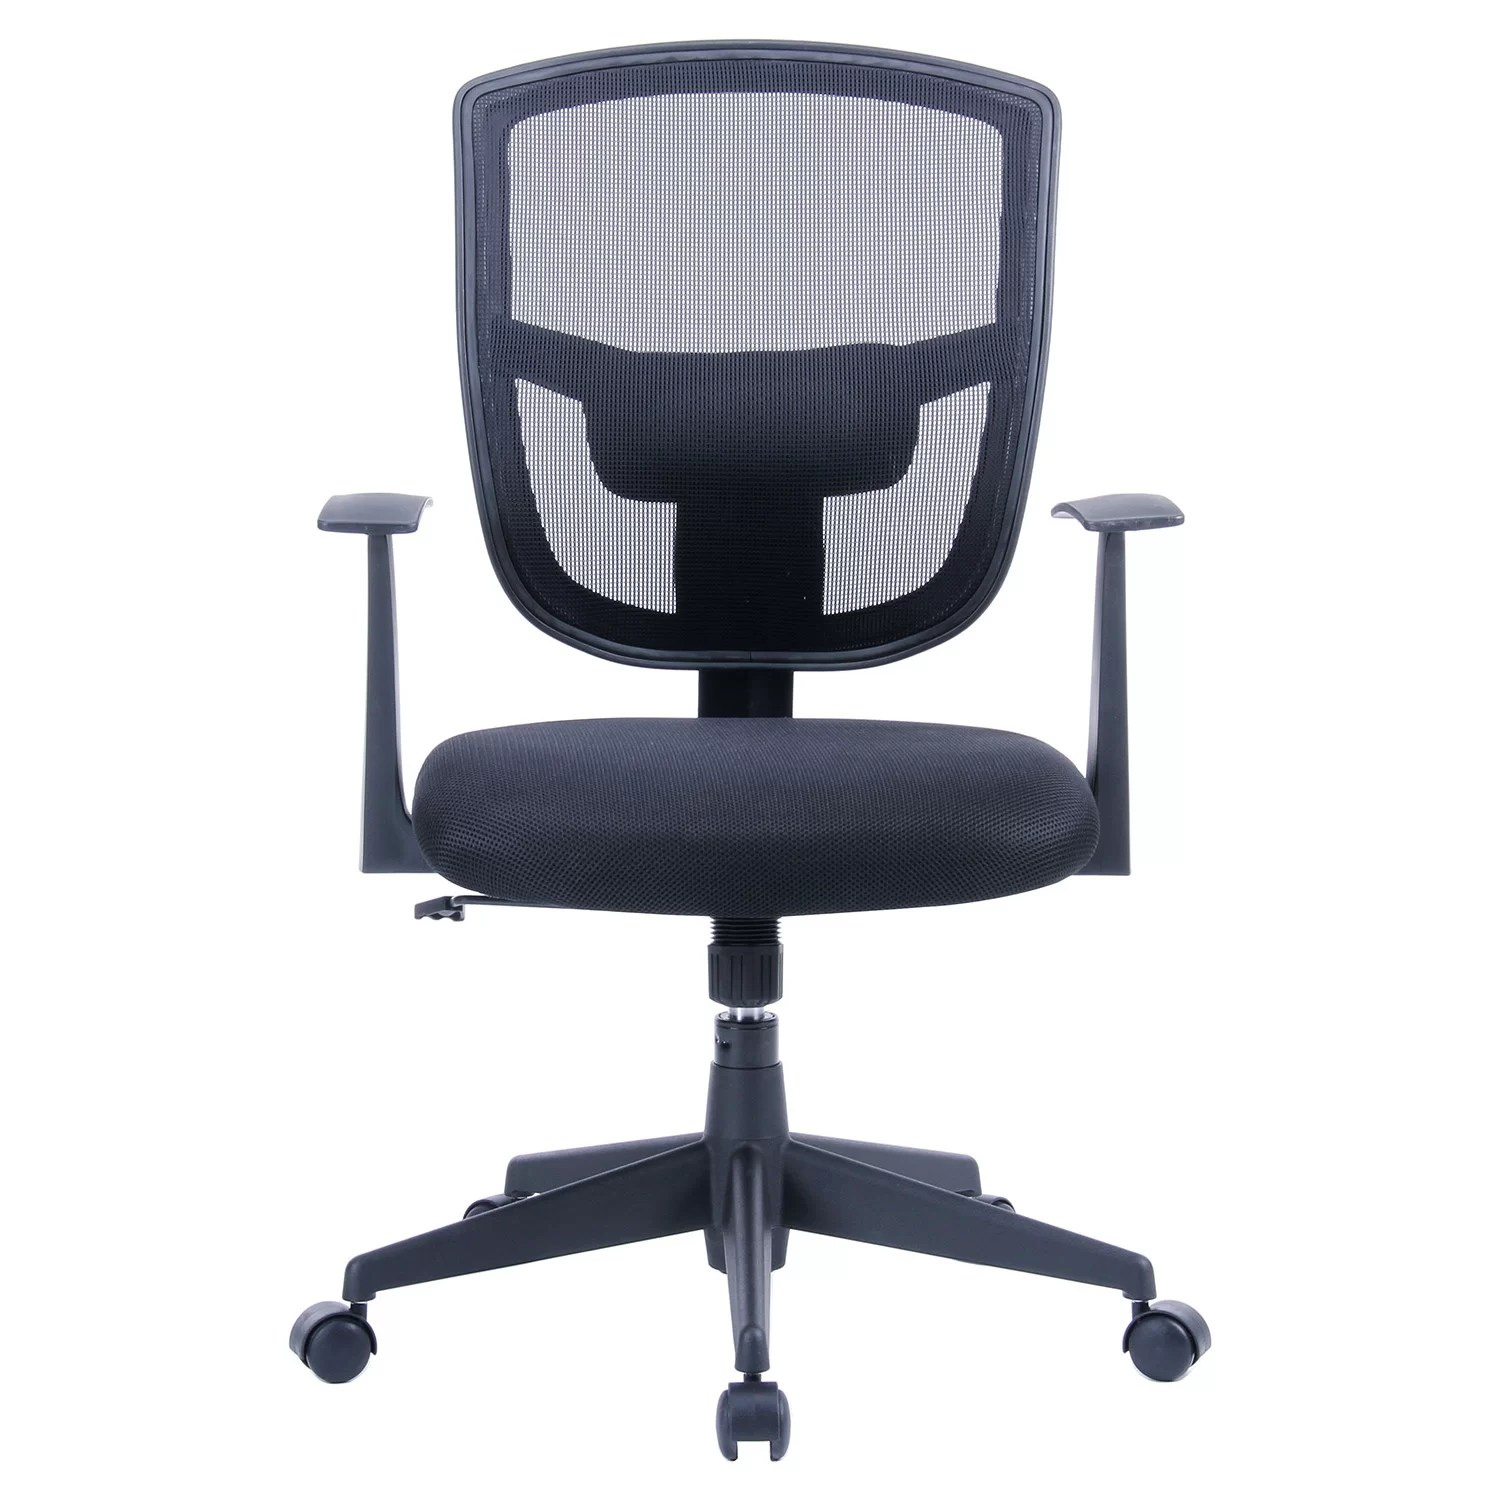 Office Chair With Arms Porthos Home Darius 35 8 Quot Mid Back Mesh Office Chair With